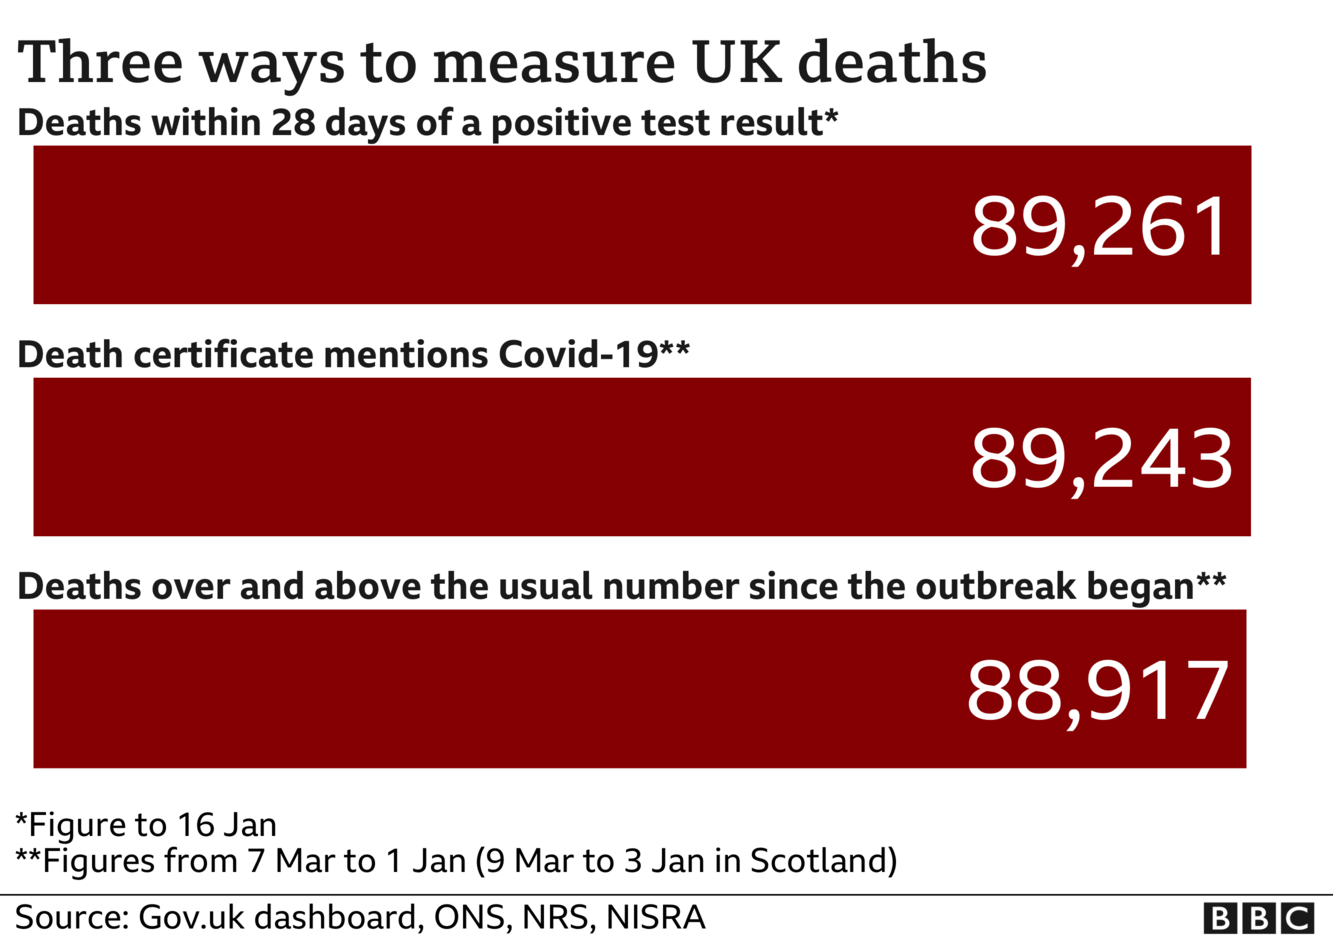 Chart showing three different totals for coronavirus deaths - the government measures all deaths within 28 days of a positive test, that total is 89,261. The ONS includes all deaths where coronavirus was mentioned on the death certificate, that total is 89,243 and the final total includes all deaths over and above the average for the time of year and that total is now 88,917. Updated 17 Jan.